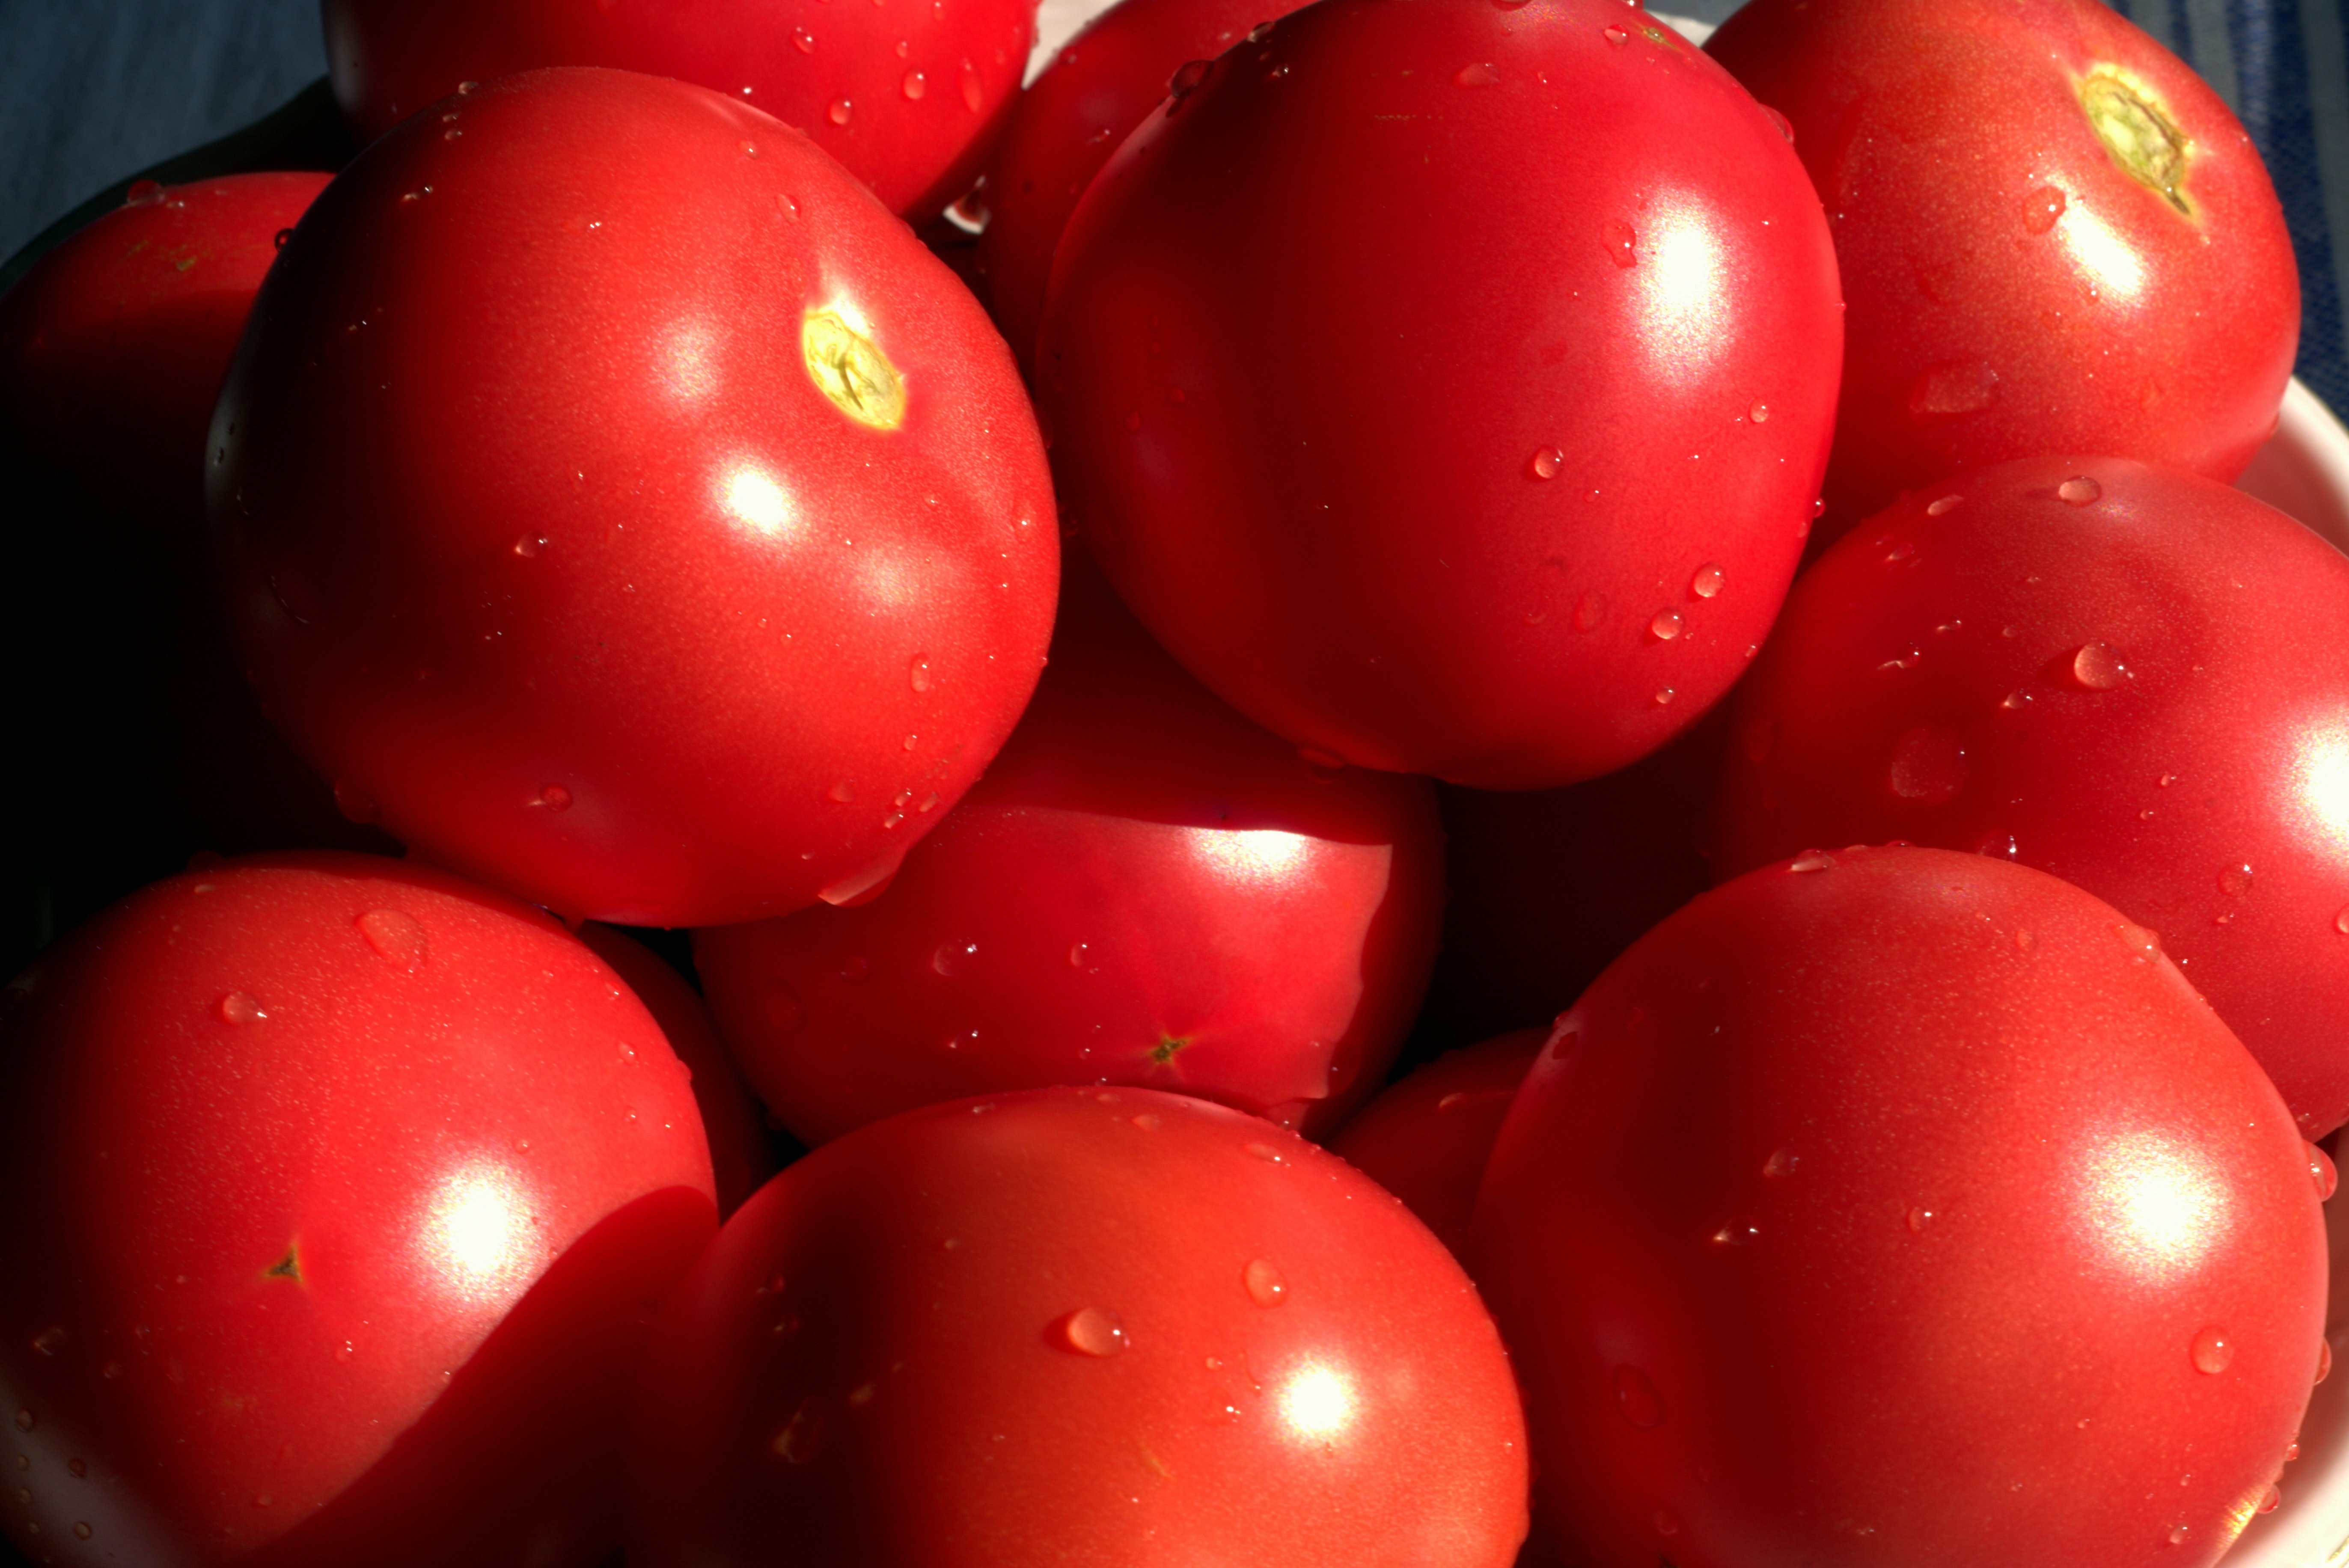 sun-safety-tomatoes